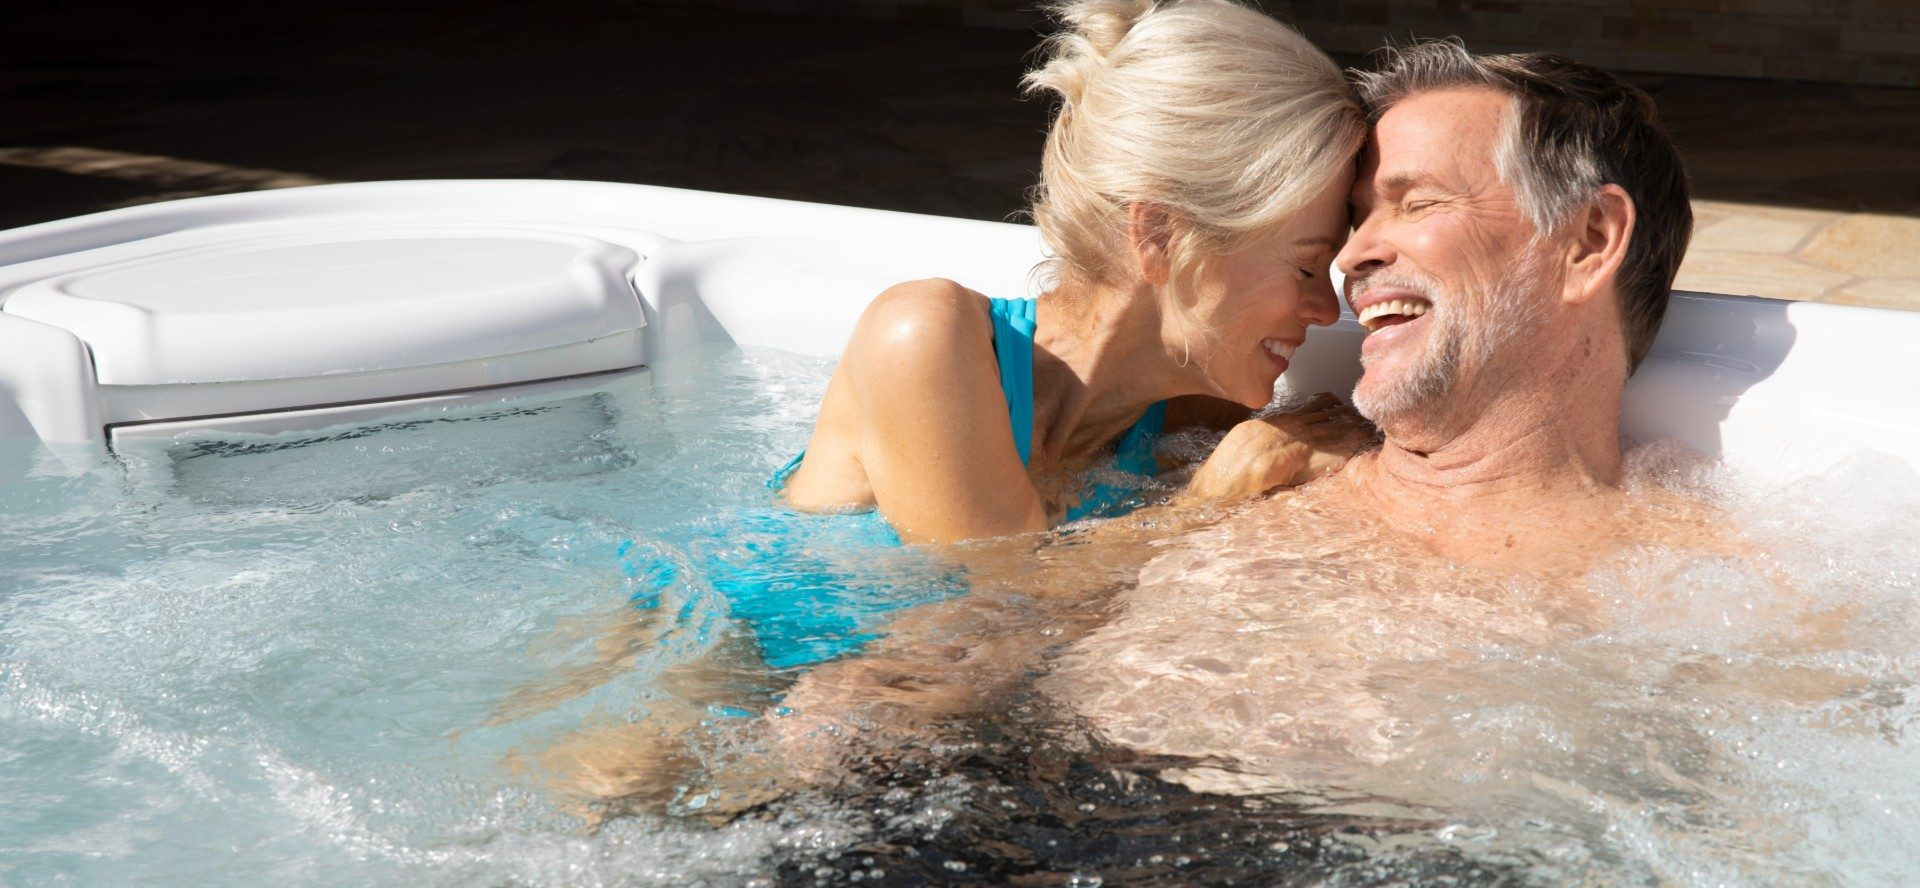 Why St. Valentine Would Love a Hot Tub